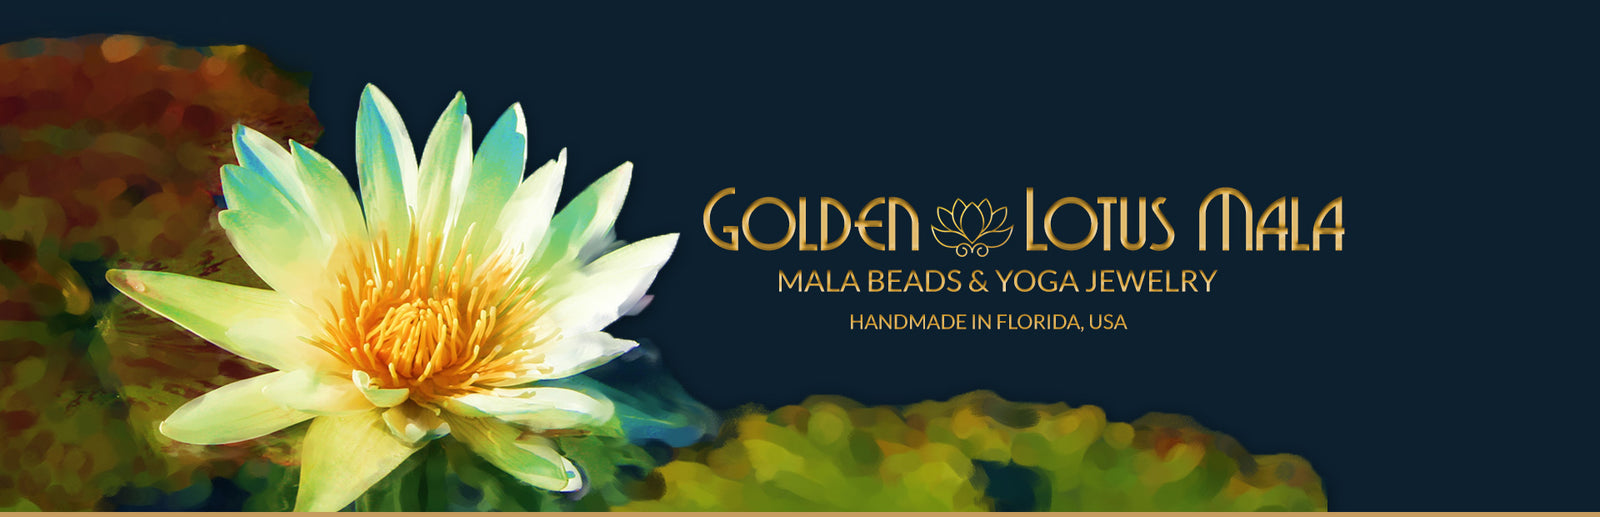 Mala Bead Necklaces & Bracelets Handmade in Florida USA